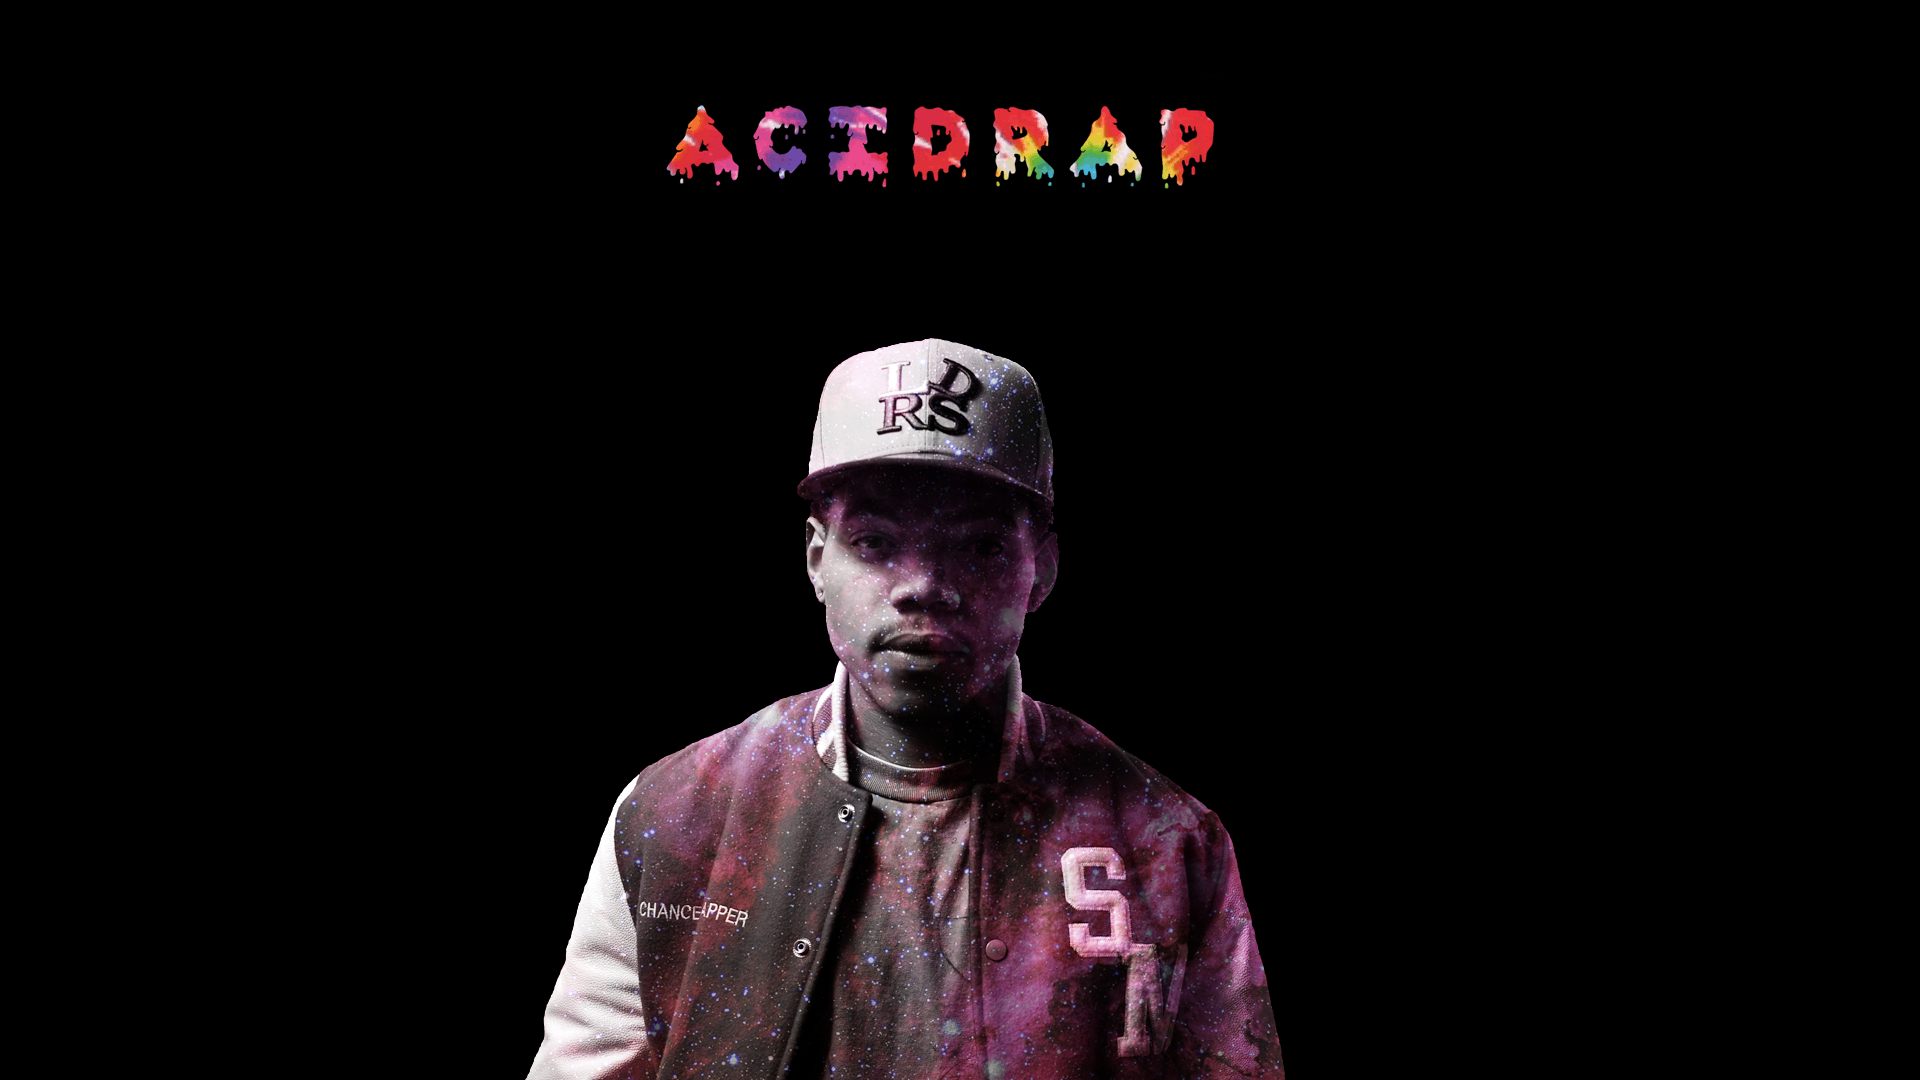 Free Download Chance The Rapper Full Hd Wallpaper And Background 1920x1080 For Your Desktop Mobile Tablet Explore 75 Rapper Wallpaper Hip Hop Iphone Wallpaper Hip Hop Wallpapers For Desktop